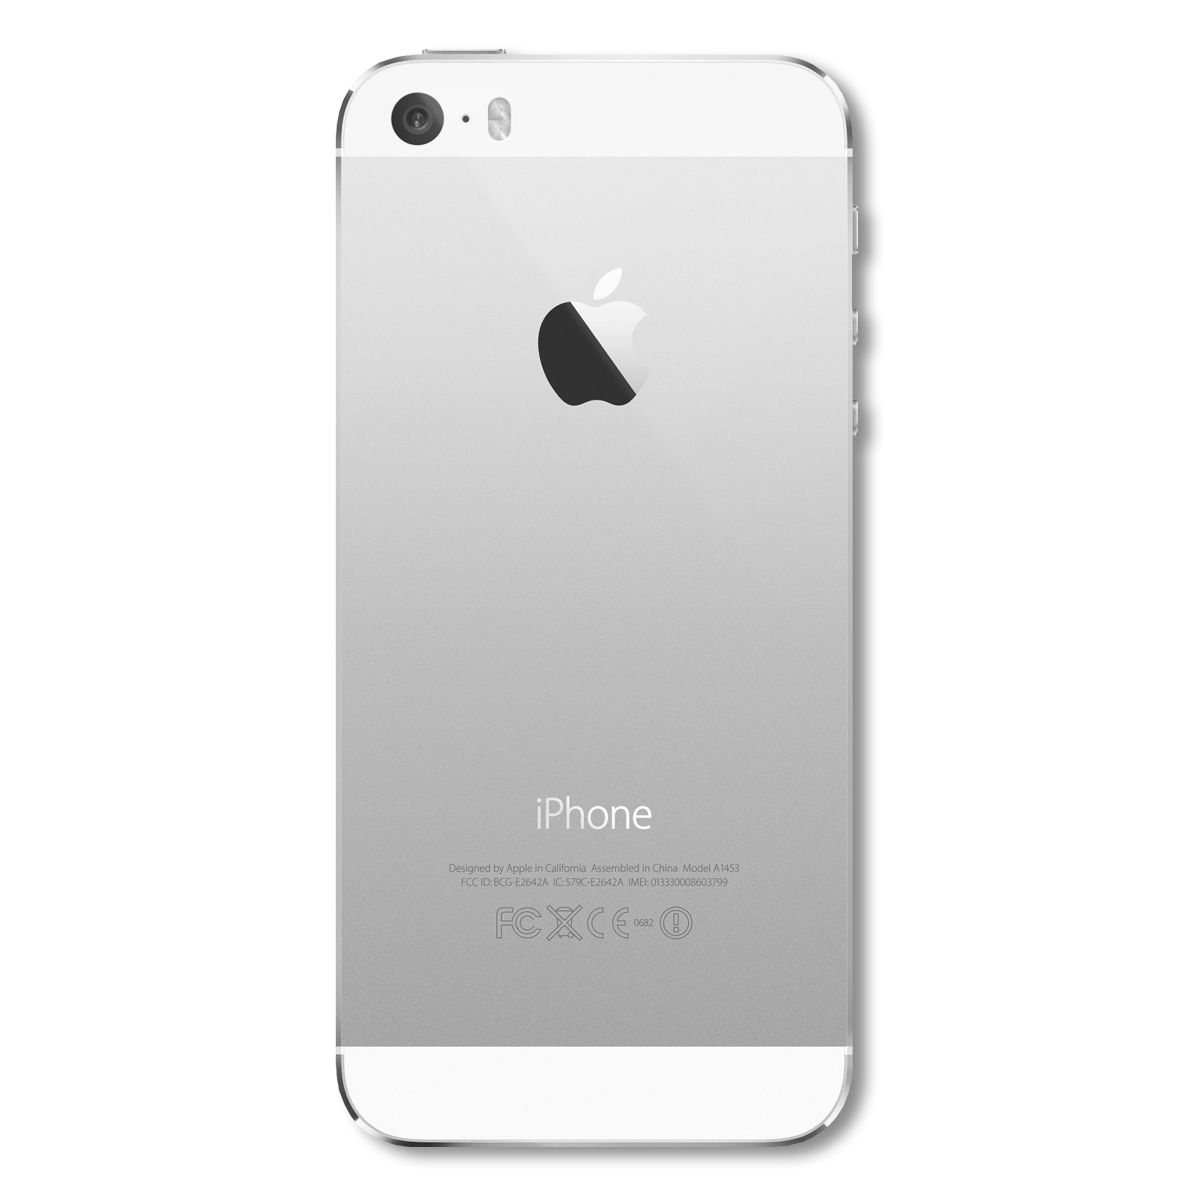 iphone a1533 model apple iphone 5s silver smartphone 64gb unlocked cell phone 7577